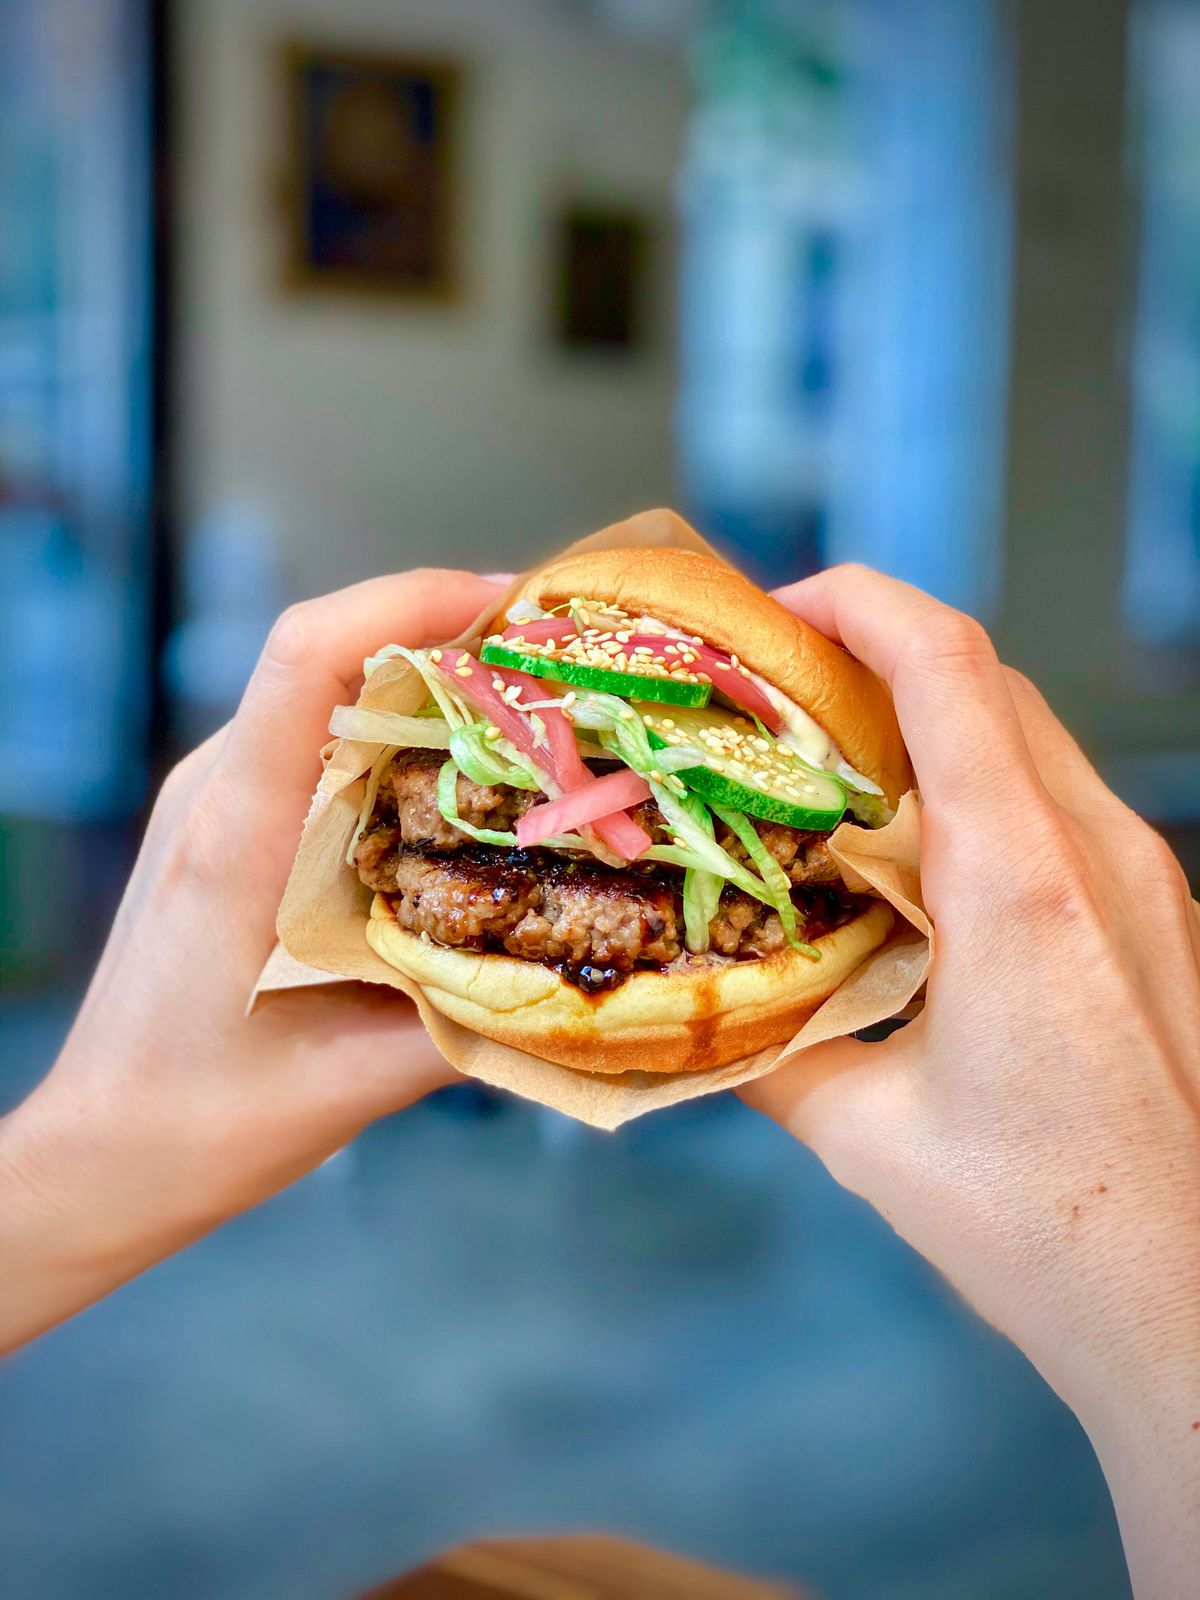 Two white hands hold a burger overflowing with patties, cucumber, pickled onions, greens, and sesame seeds